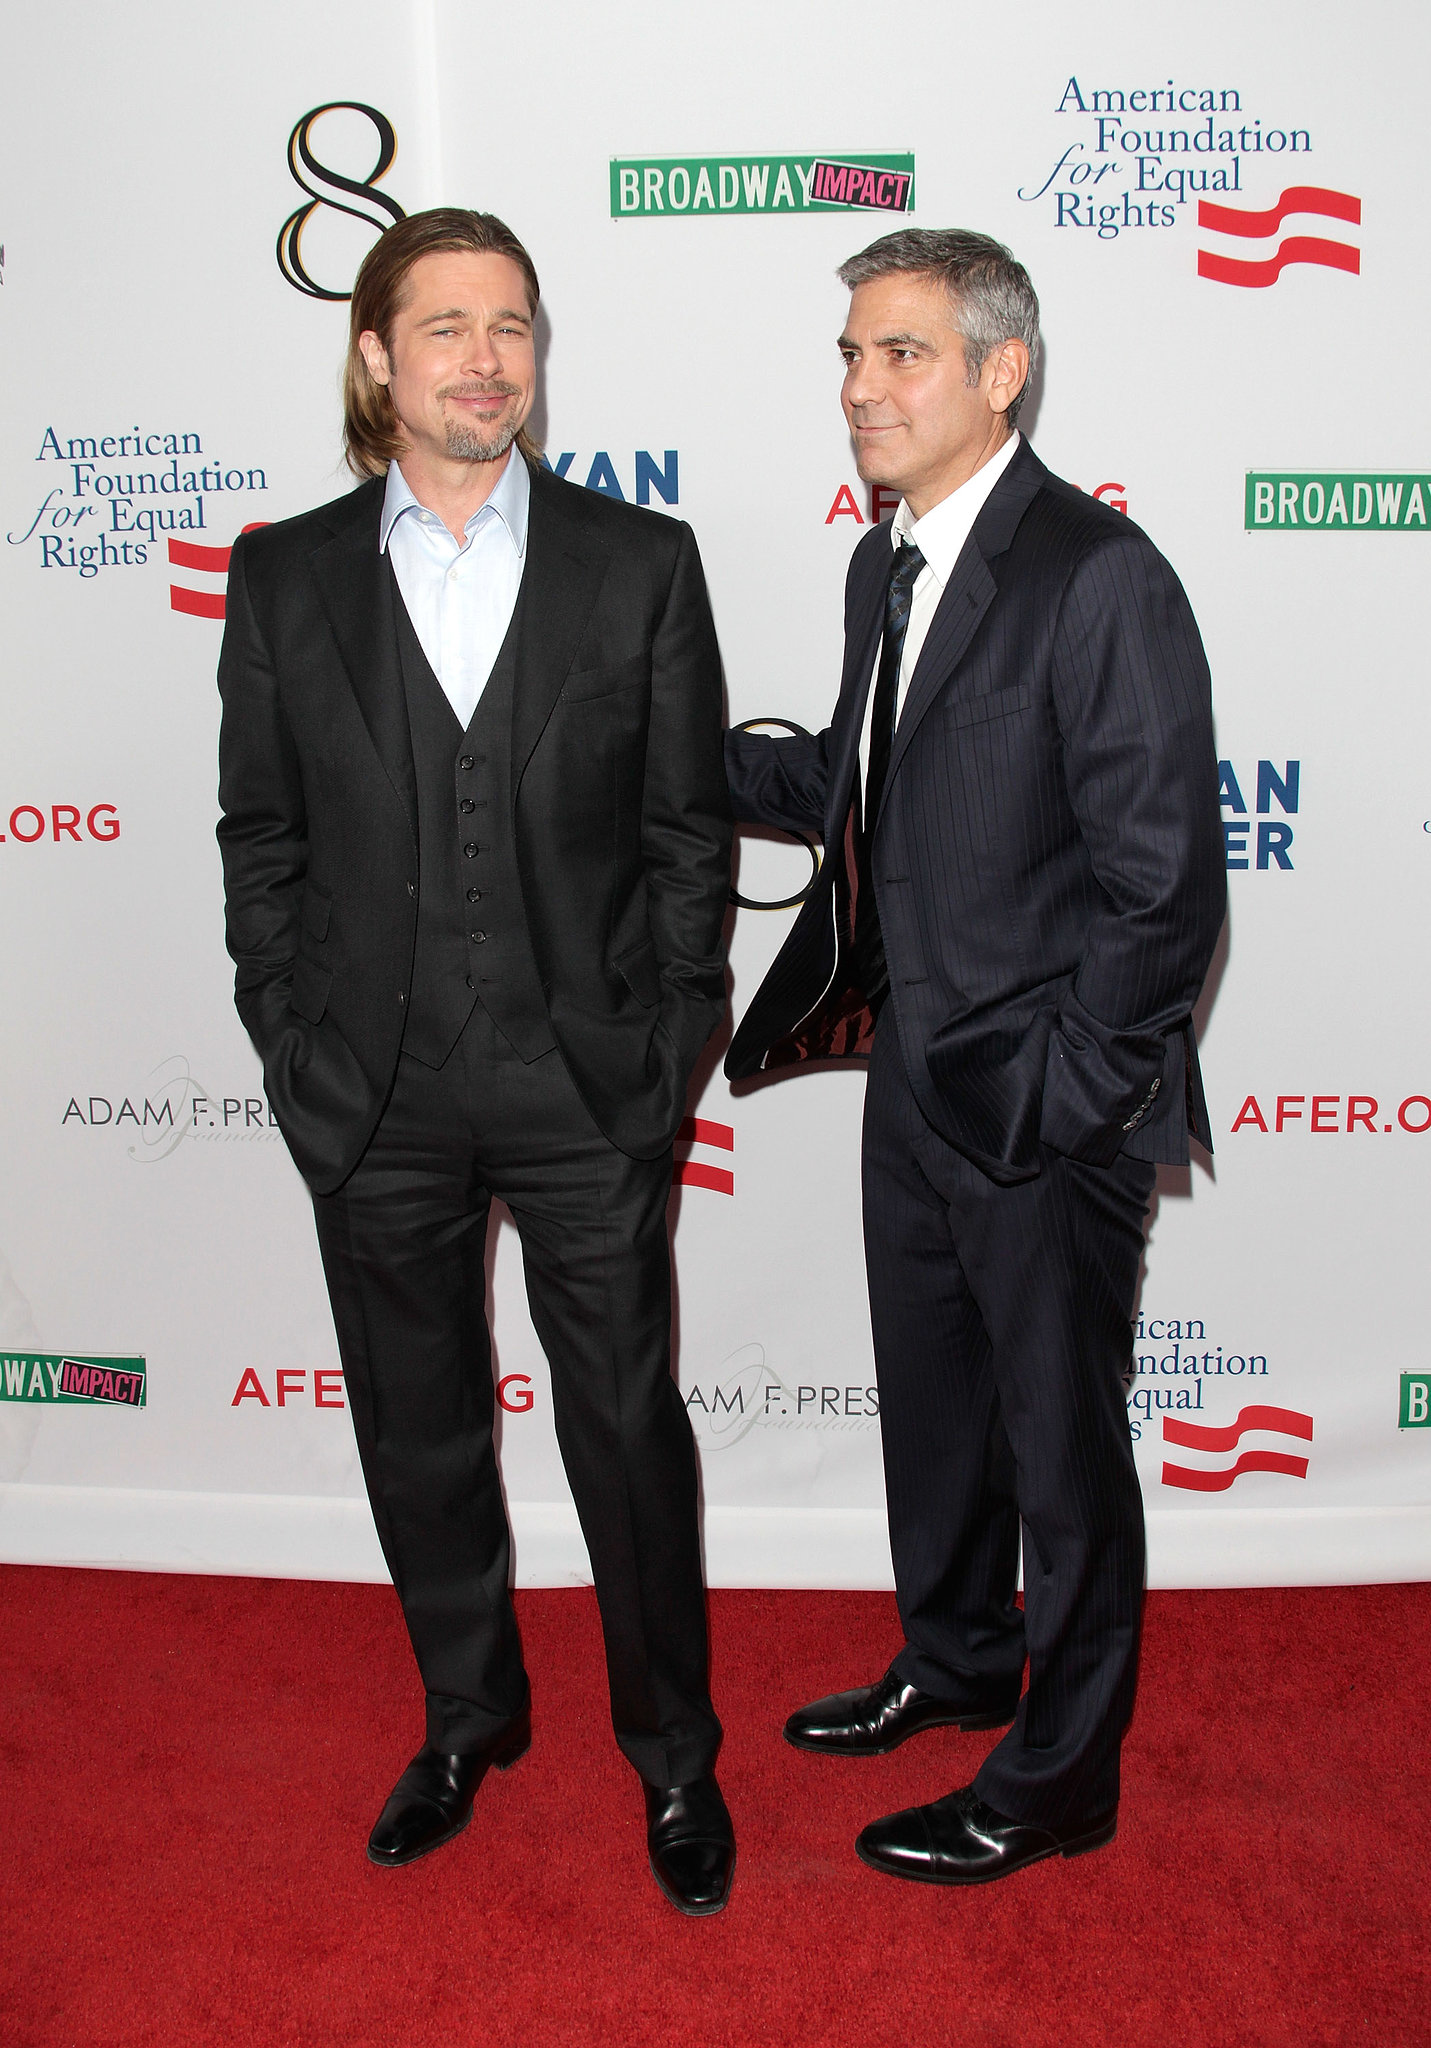 Brad Pitt and George Clooney put their friendship on the big screen in the Ocean's series. The guys link up regularly for big Hollywood award shows.